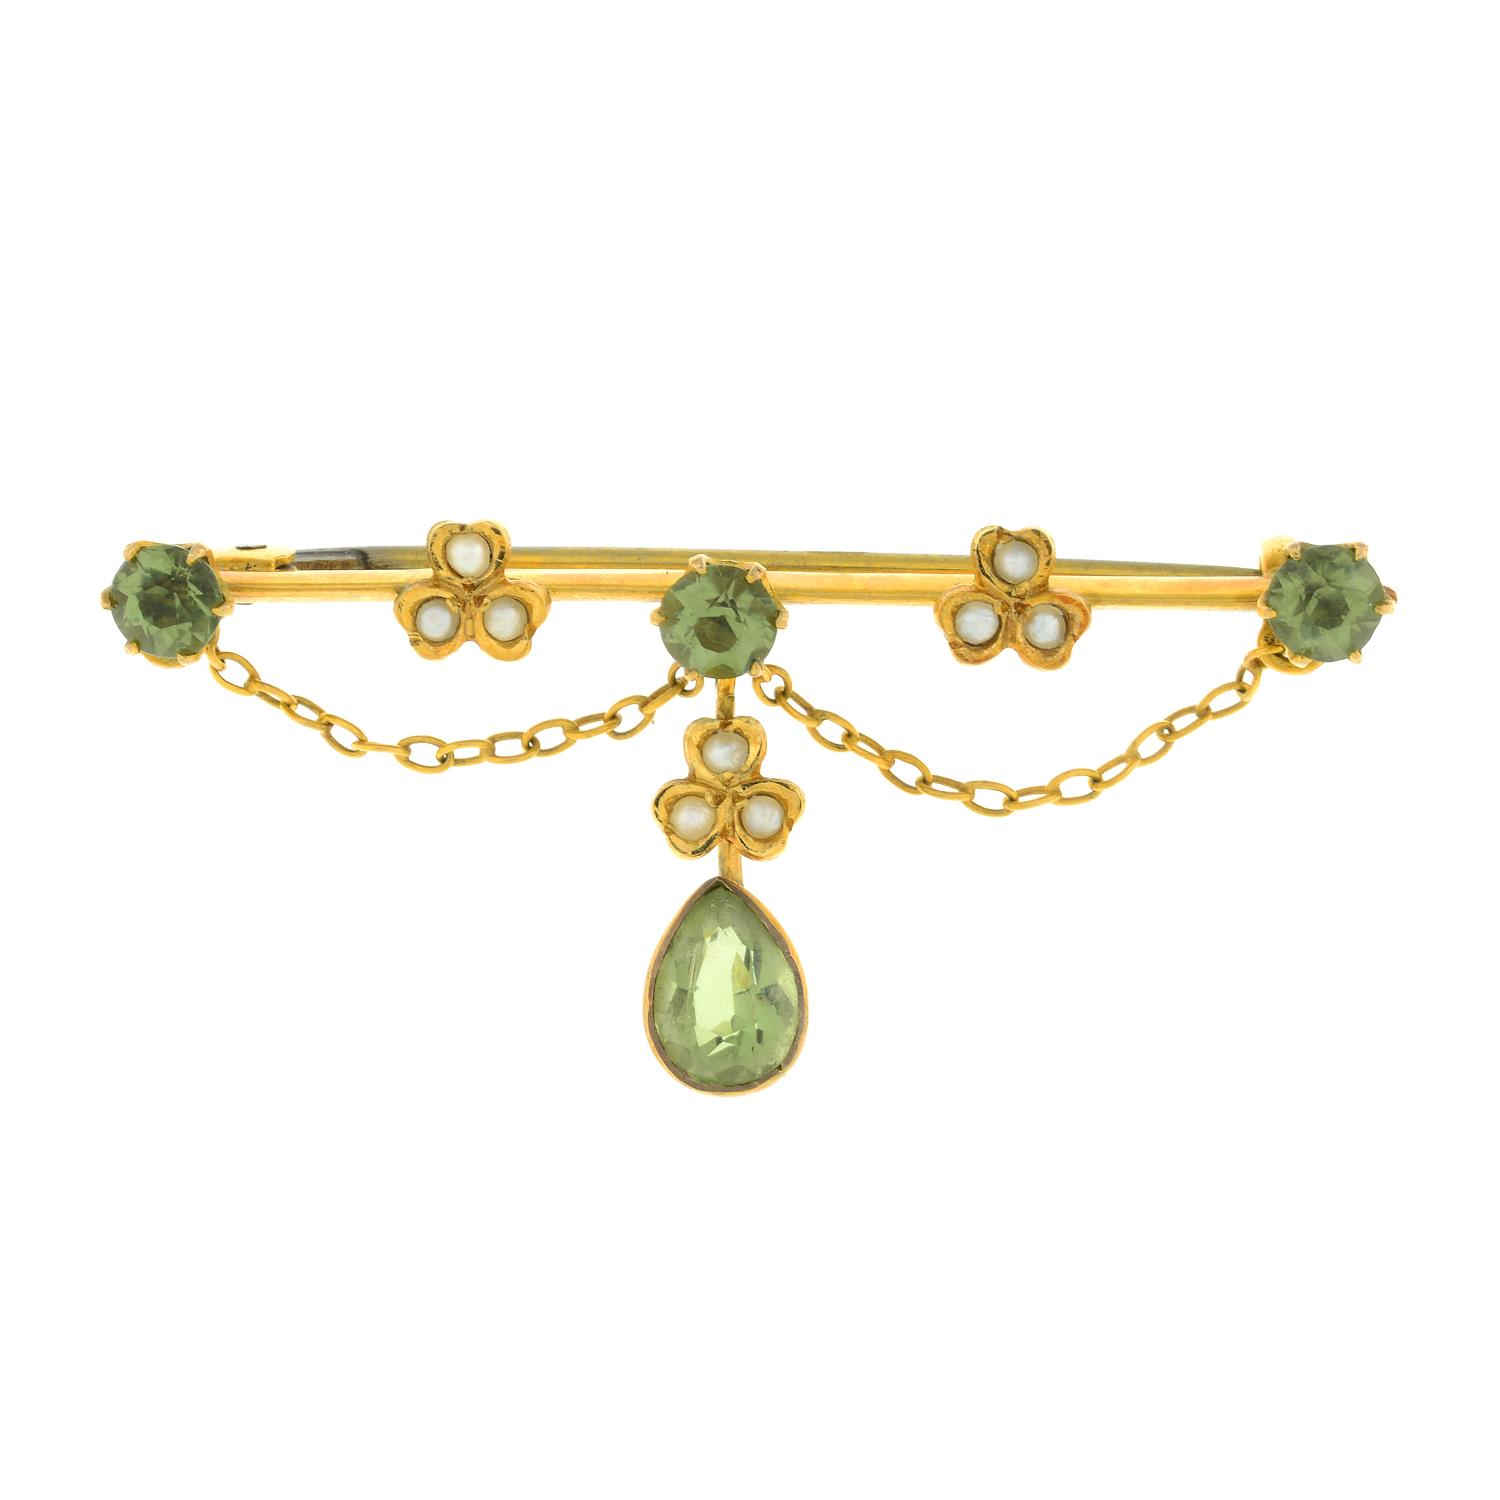 An Edwardian peridot and split pearl brooch.